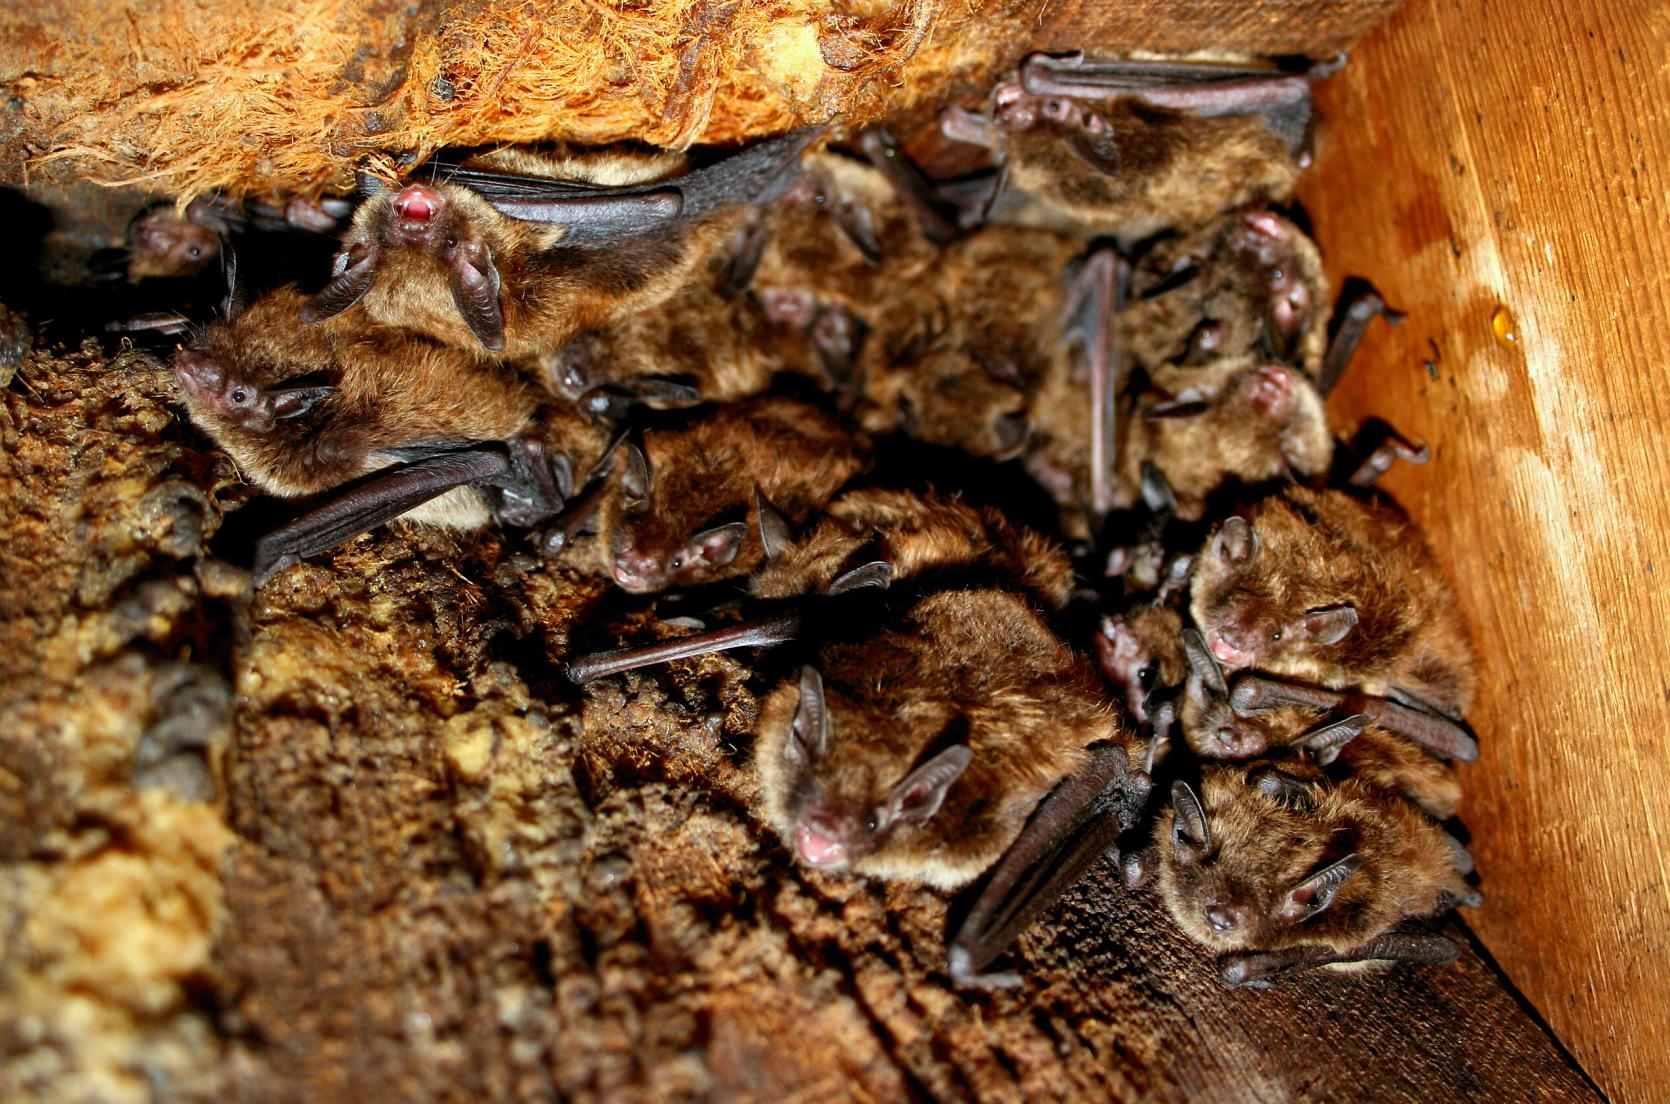 Little brown bats in an attic.